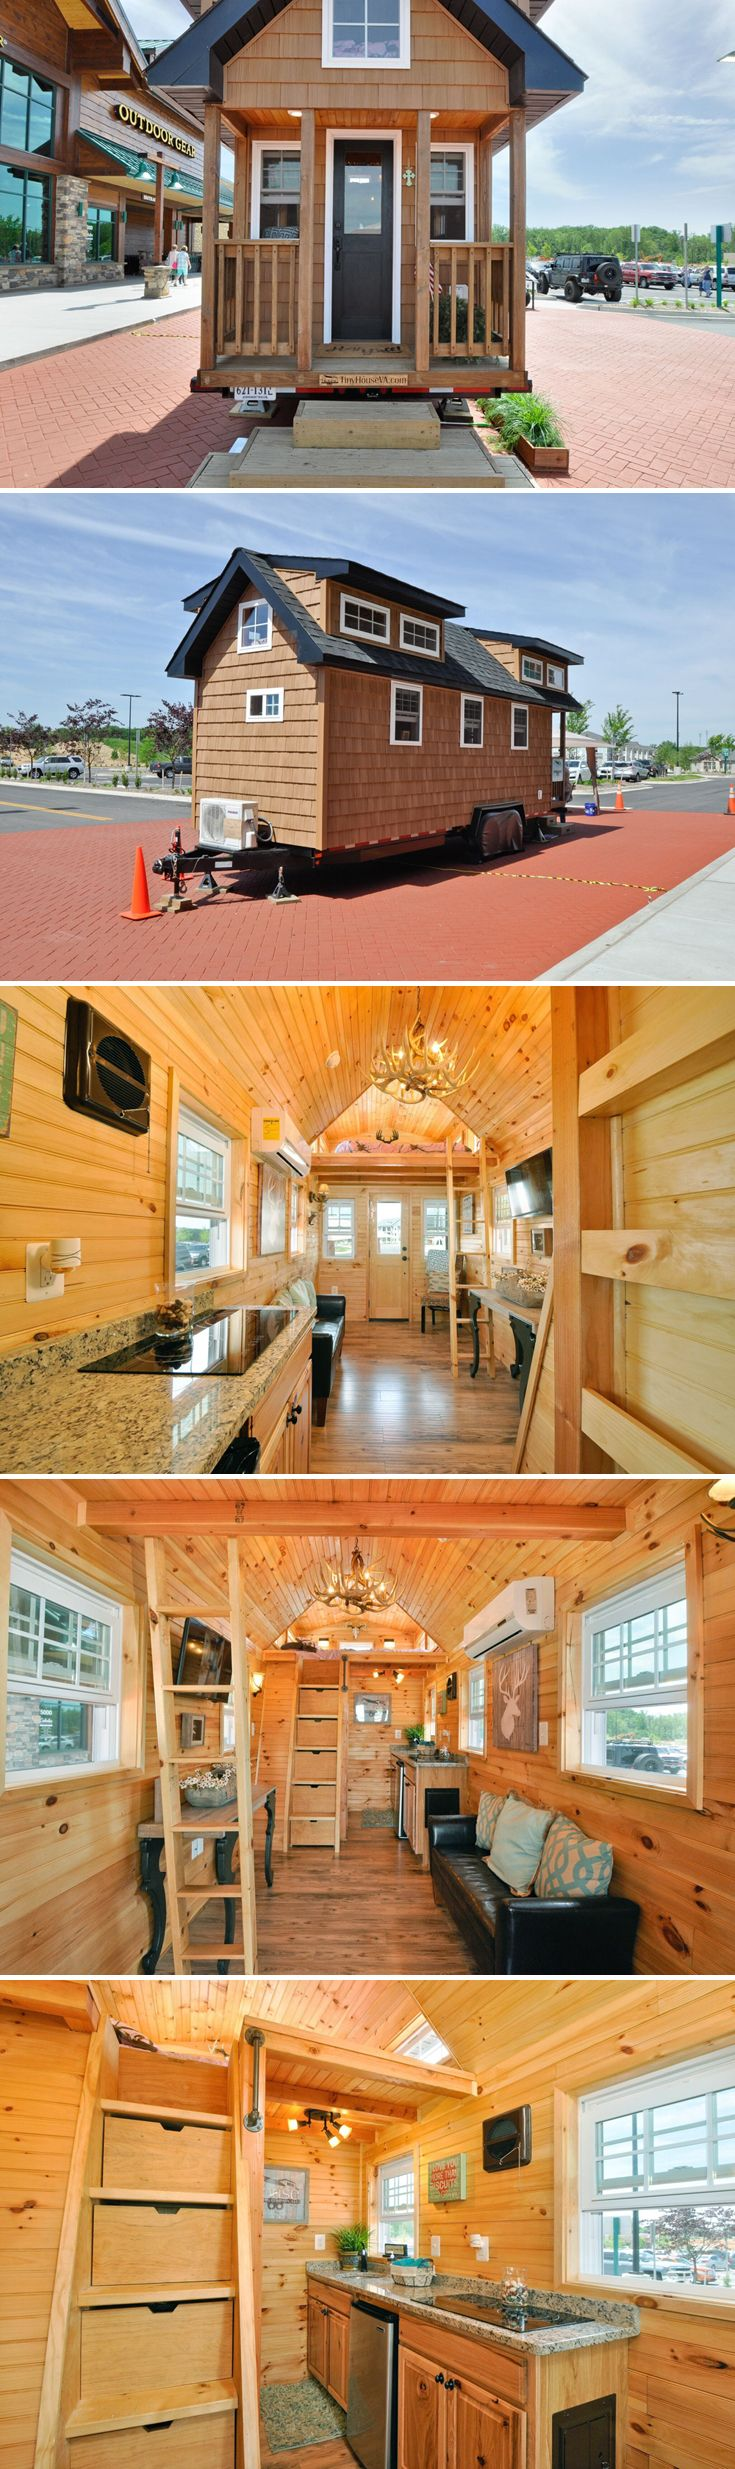 1000 ideas about tiny houses on pinterest tiny homes for Energy efficient tiny homes